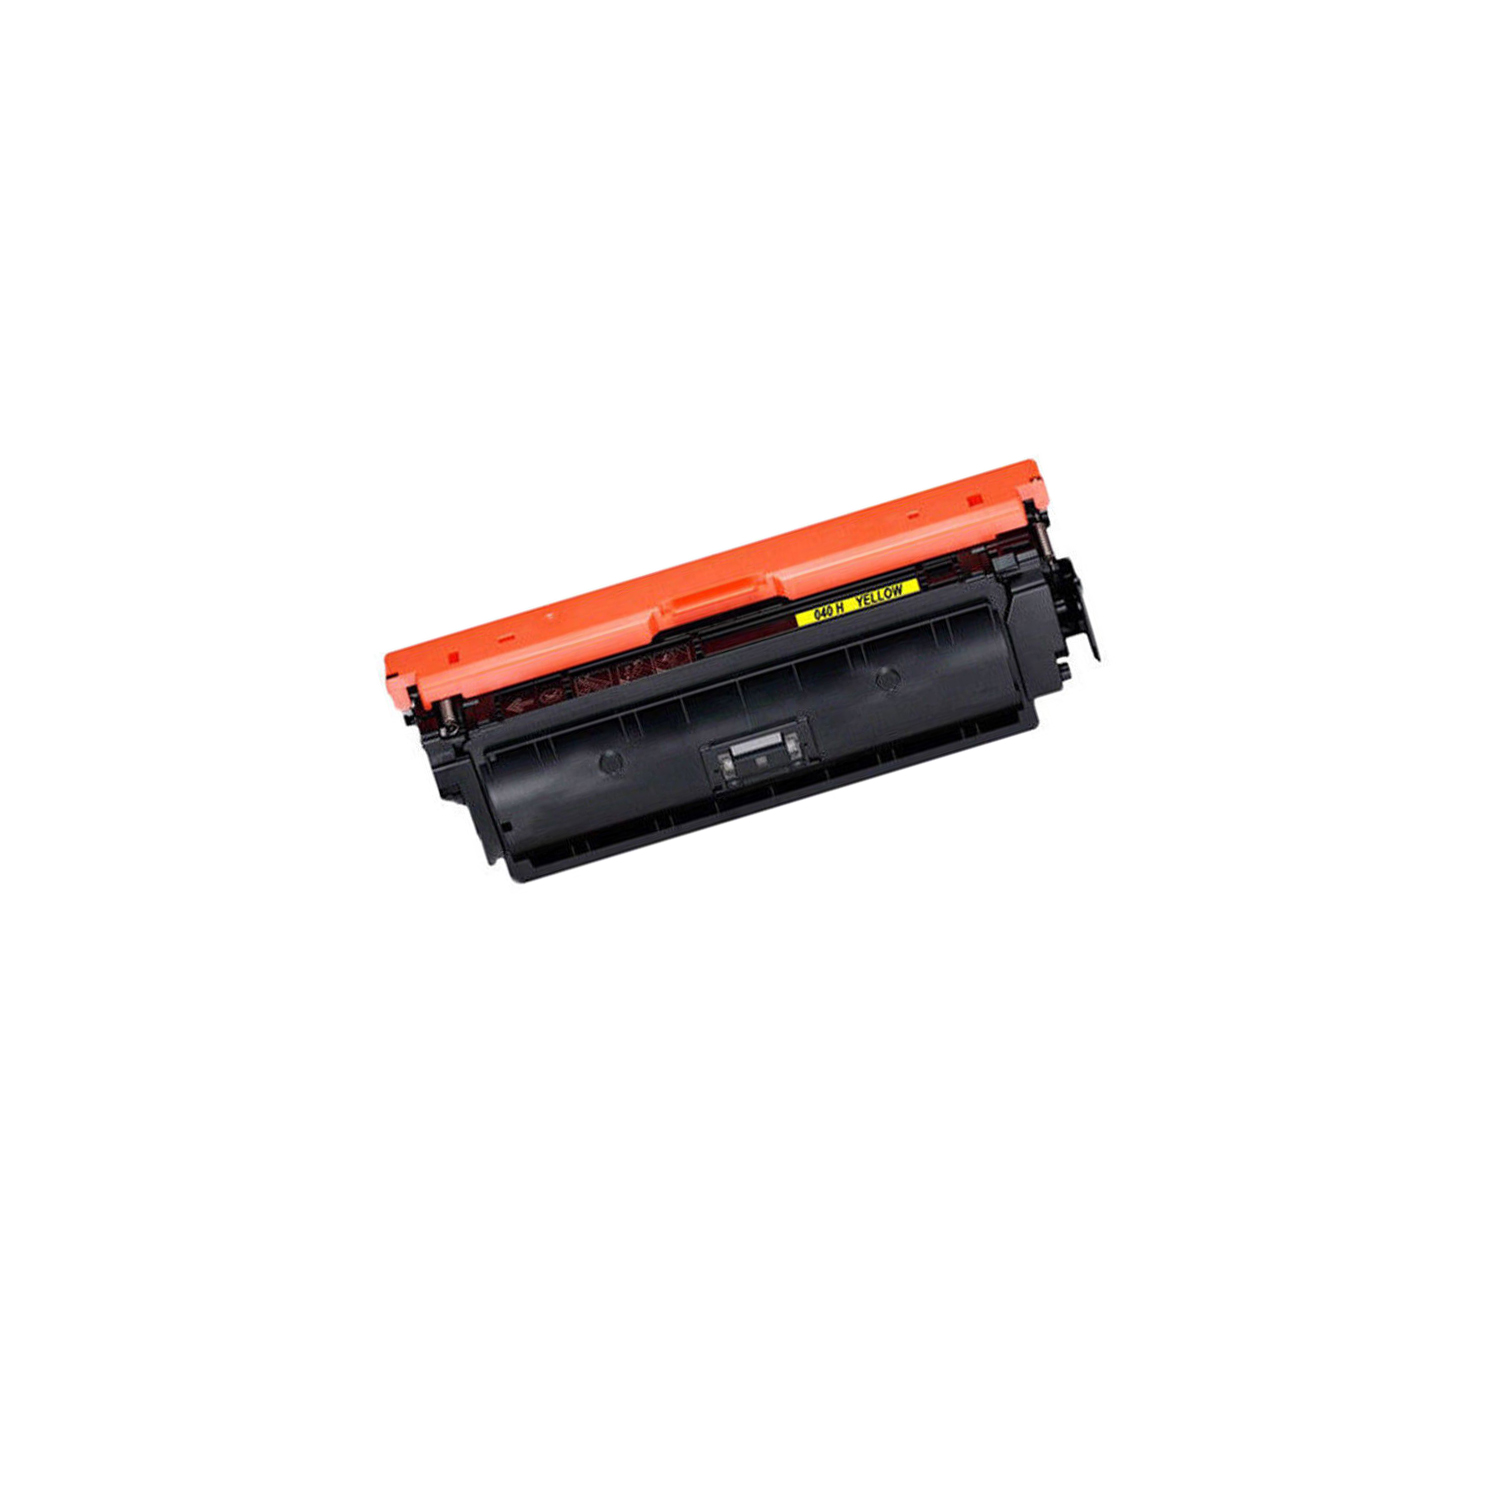 Black Cyan Magenta Yellow,4-Pack AB Volts Remanufactured High Yeild Toner Cartridge Replacement for Canon 040H for ImageCLASS LBP712Cdn